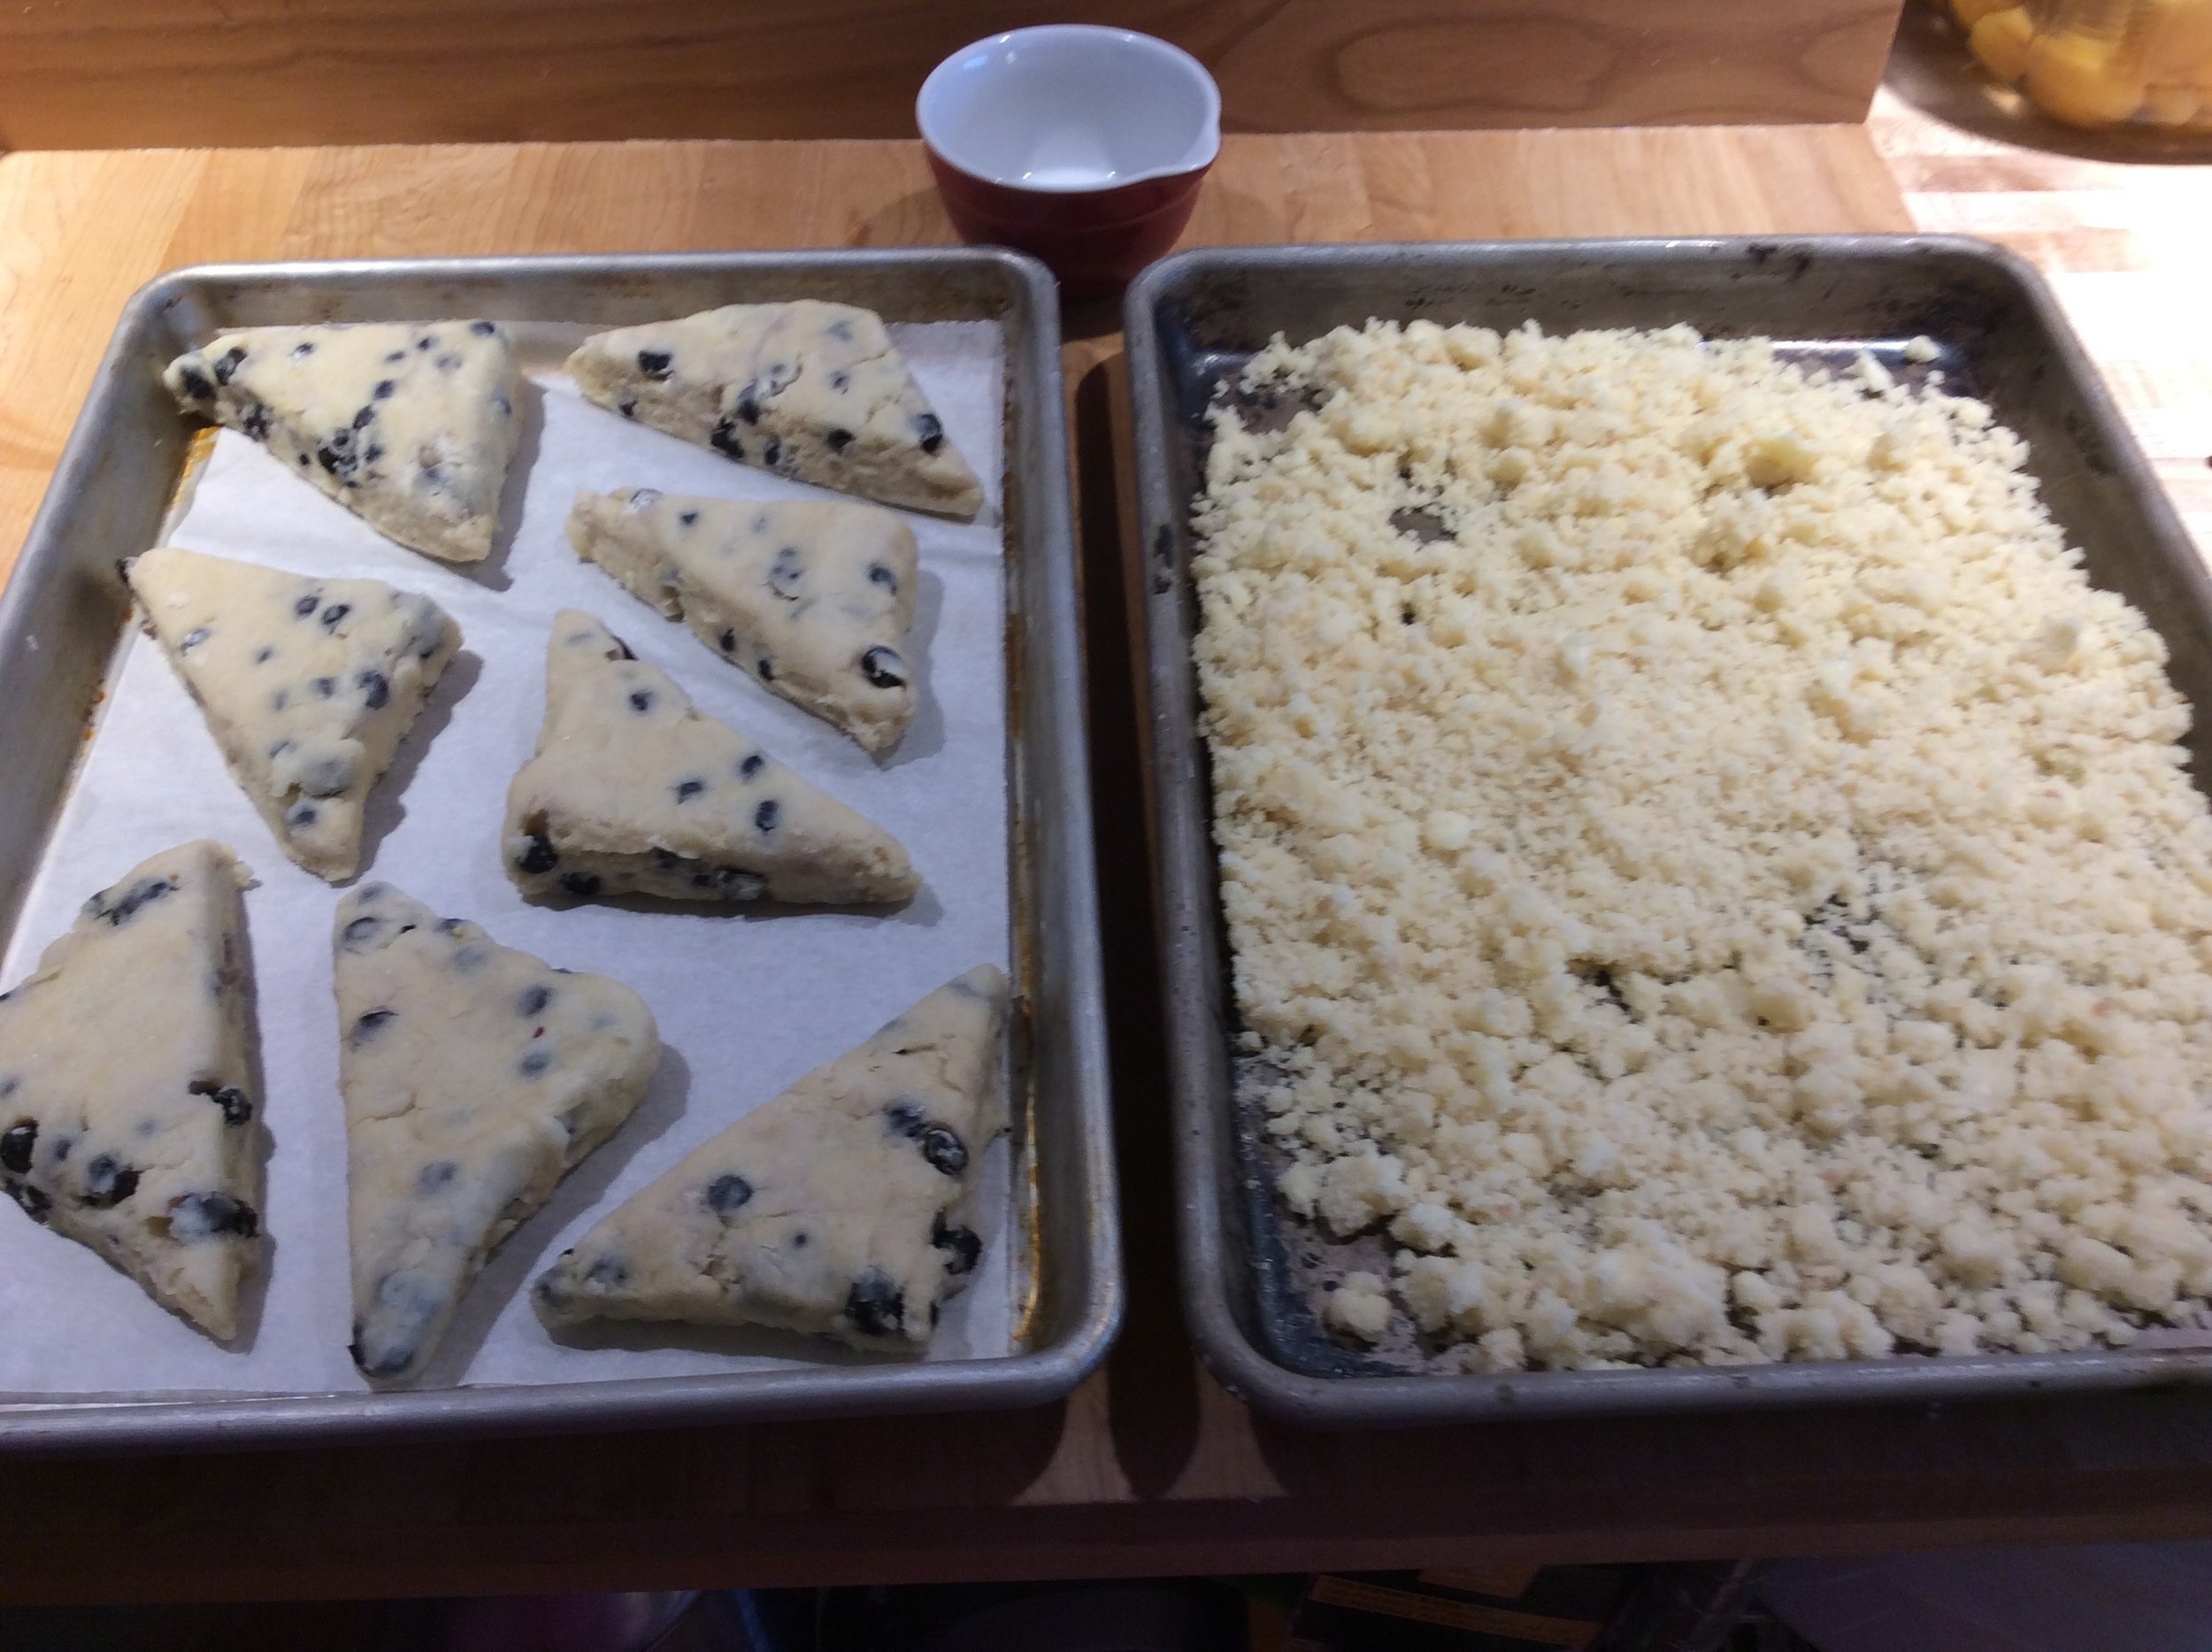 Into triangles arrange on a parchment lined tray, brush with milk and top with butter streusel